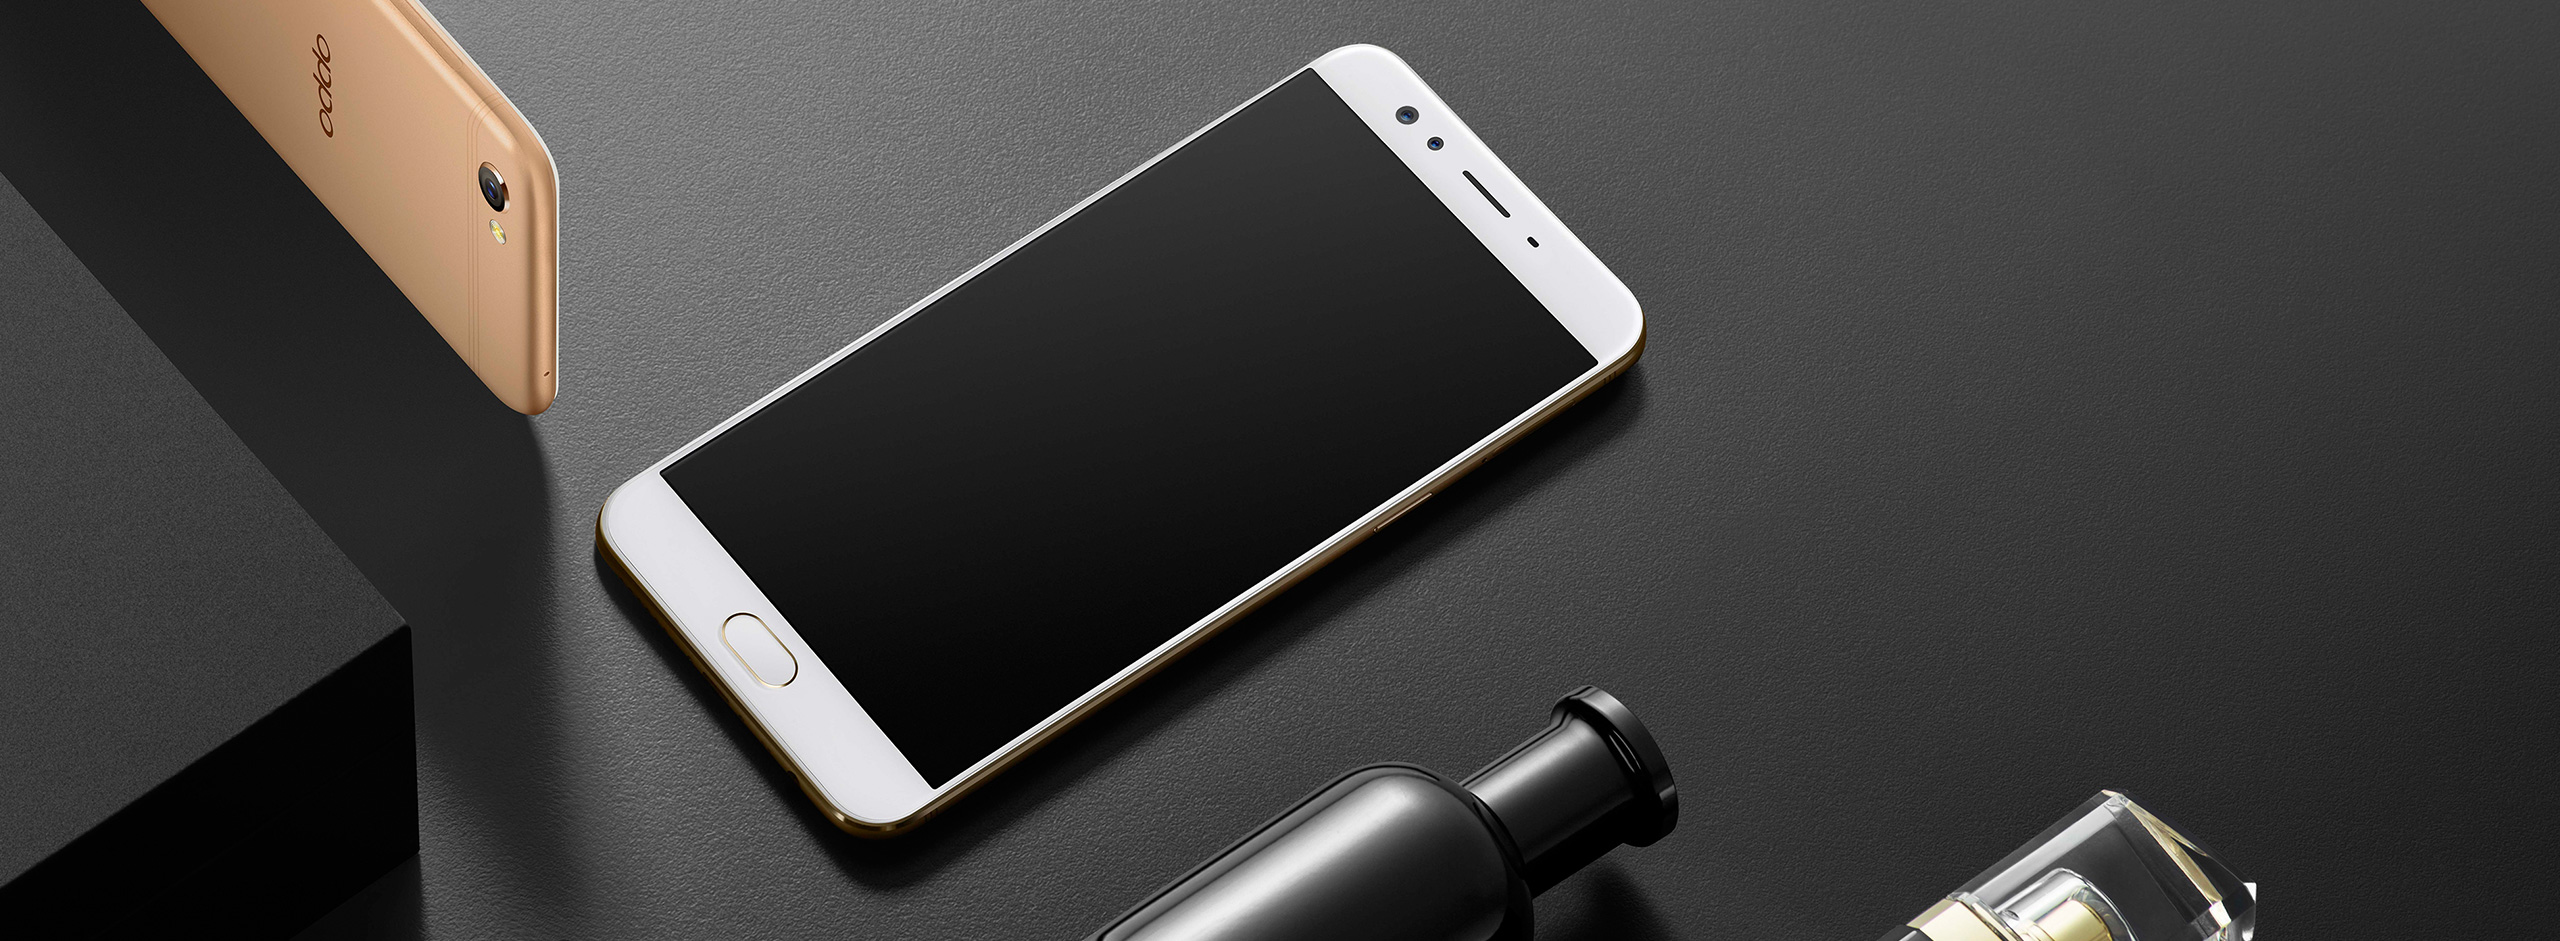 Oppo F3 Plus es with a 6 00 inch touchscreen display with a resolution of 1080 pixels by 1920 pixels The Oppo F3 Plus is powered by 1 95GHz octa core